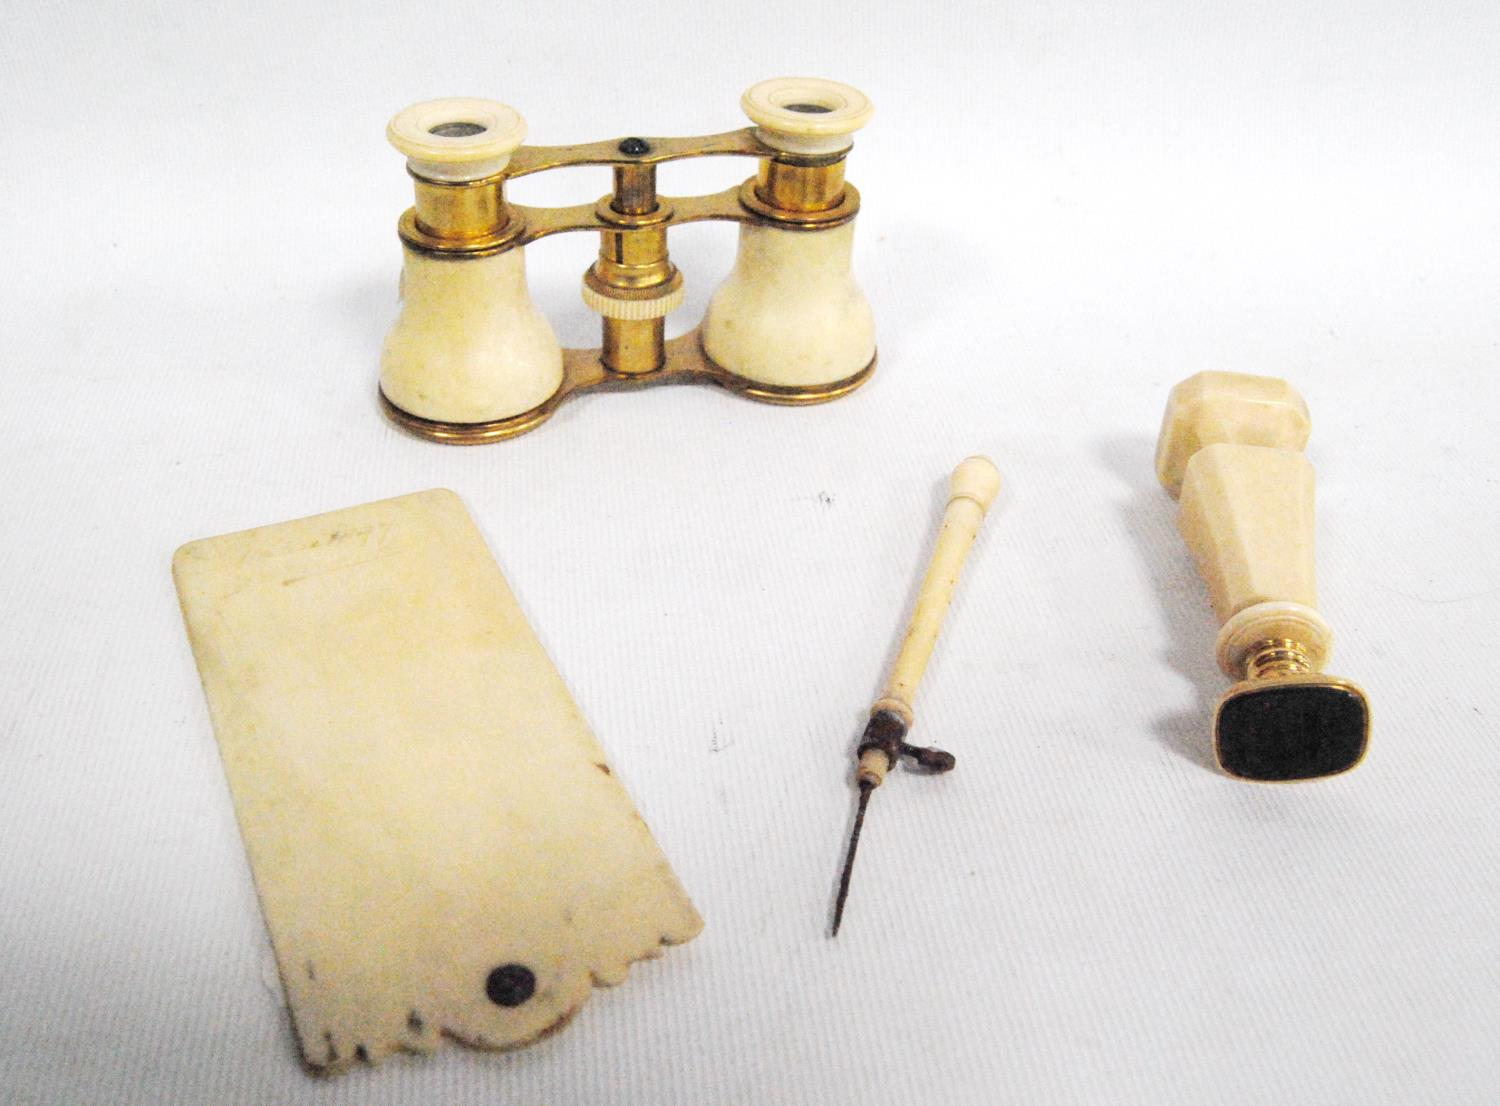 19th/early 20th century ivory scribe and plate seal, also a pair of opera glasses.